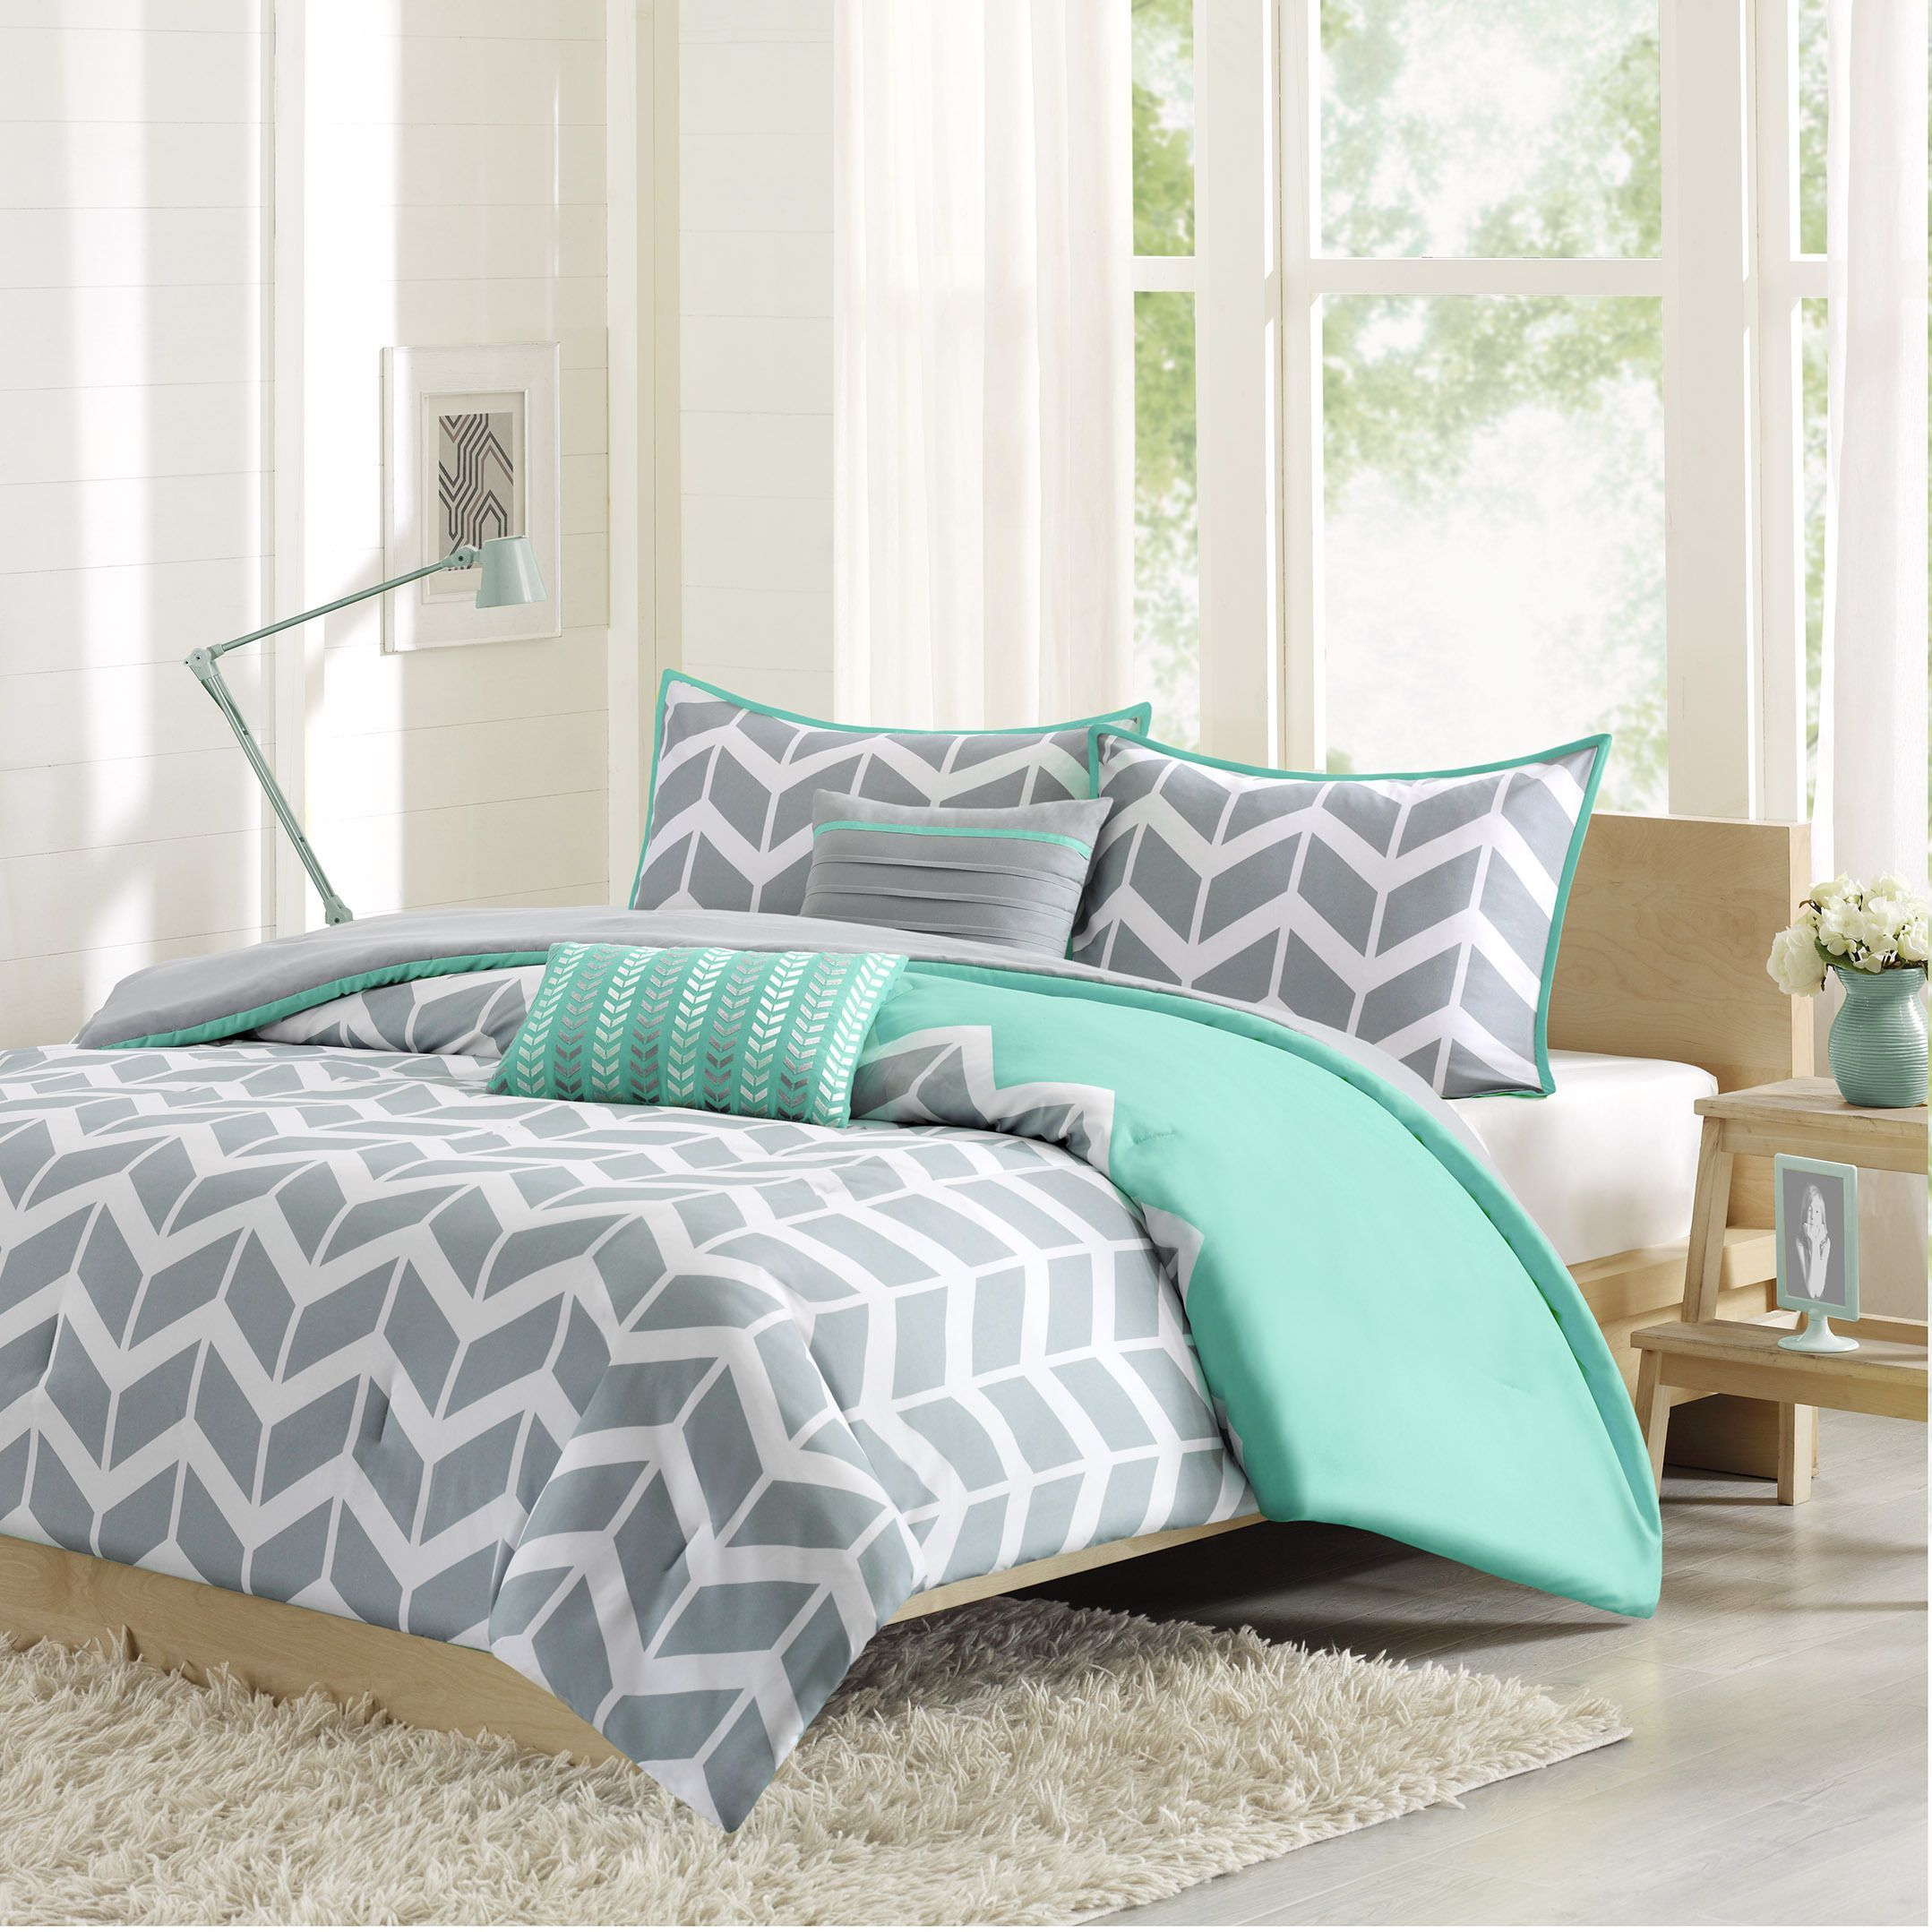 cute comforters blue concept green teal girl and mint set beautiful comforter